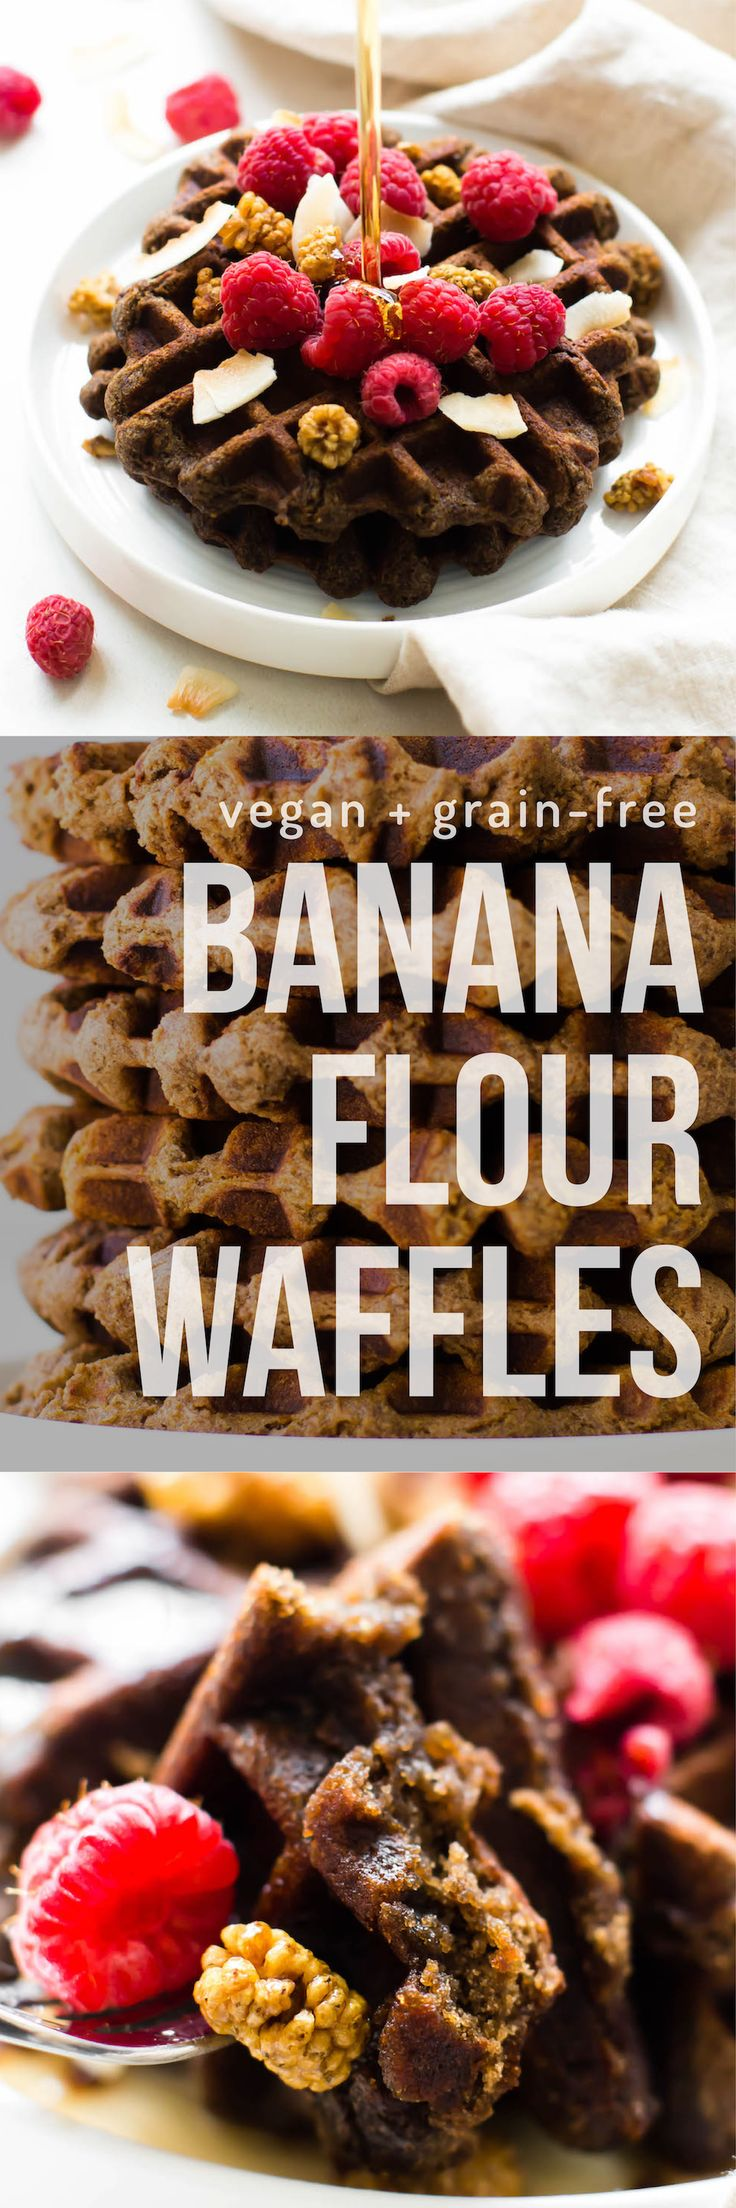 The best vegan   paleo waffles made with banana flour for an easy healthy breakfast! Grain-free, nut-free, egg-free, AIP-friendly. via @Natalie | Feasting on Fruit